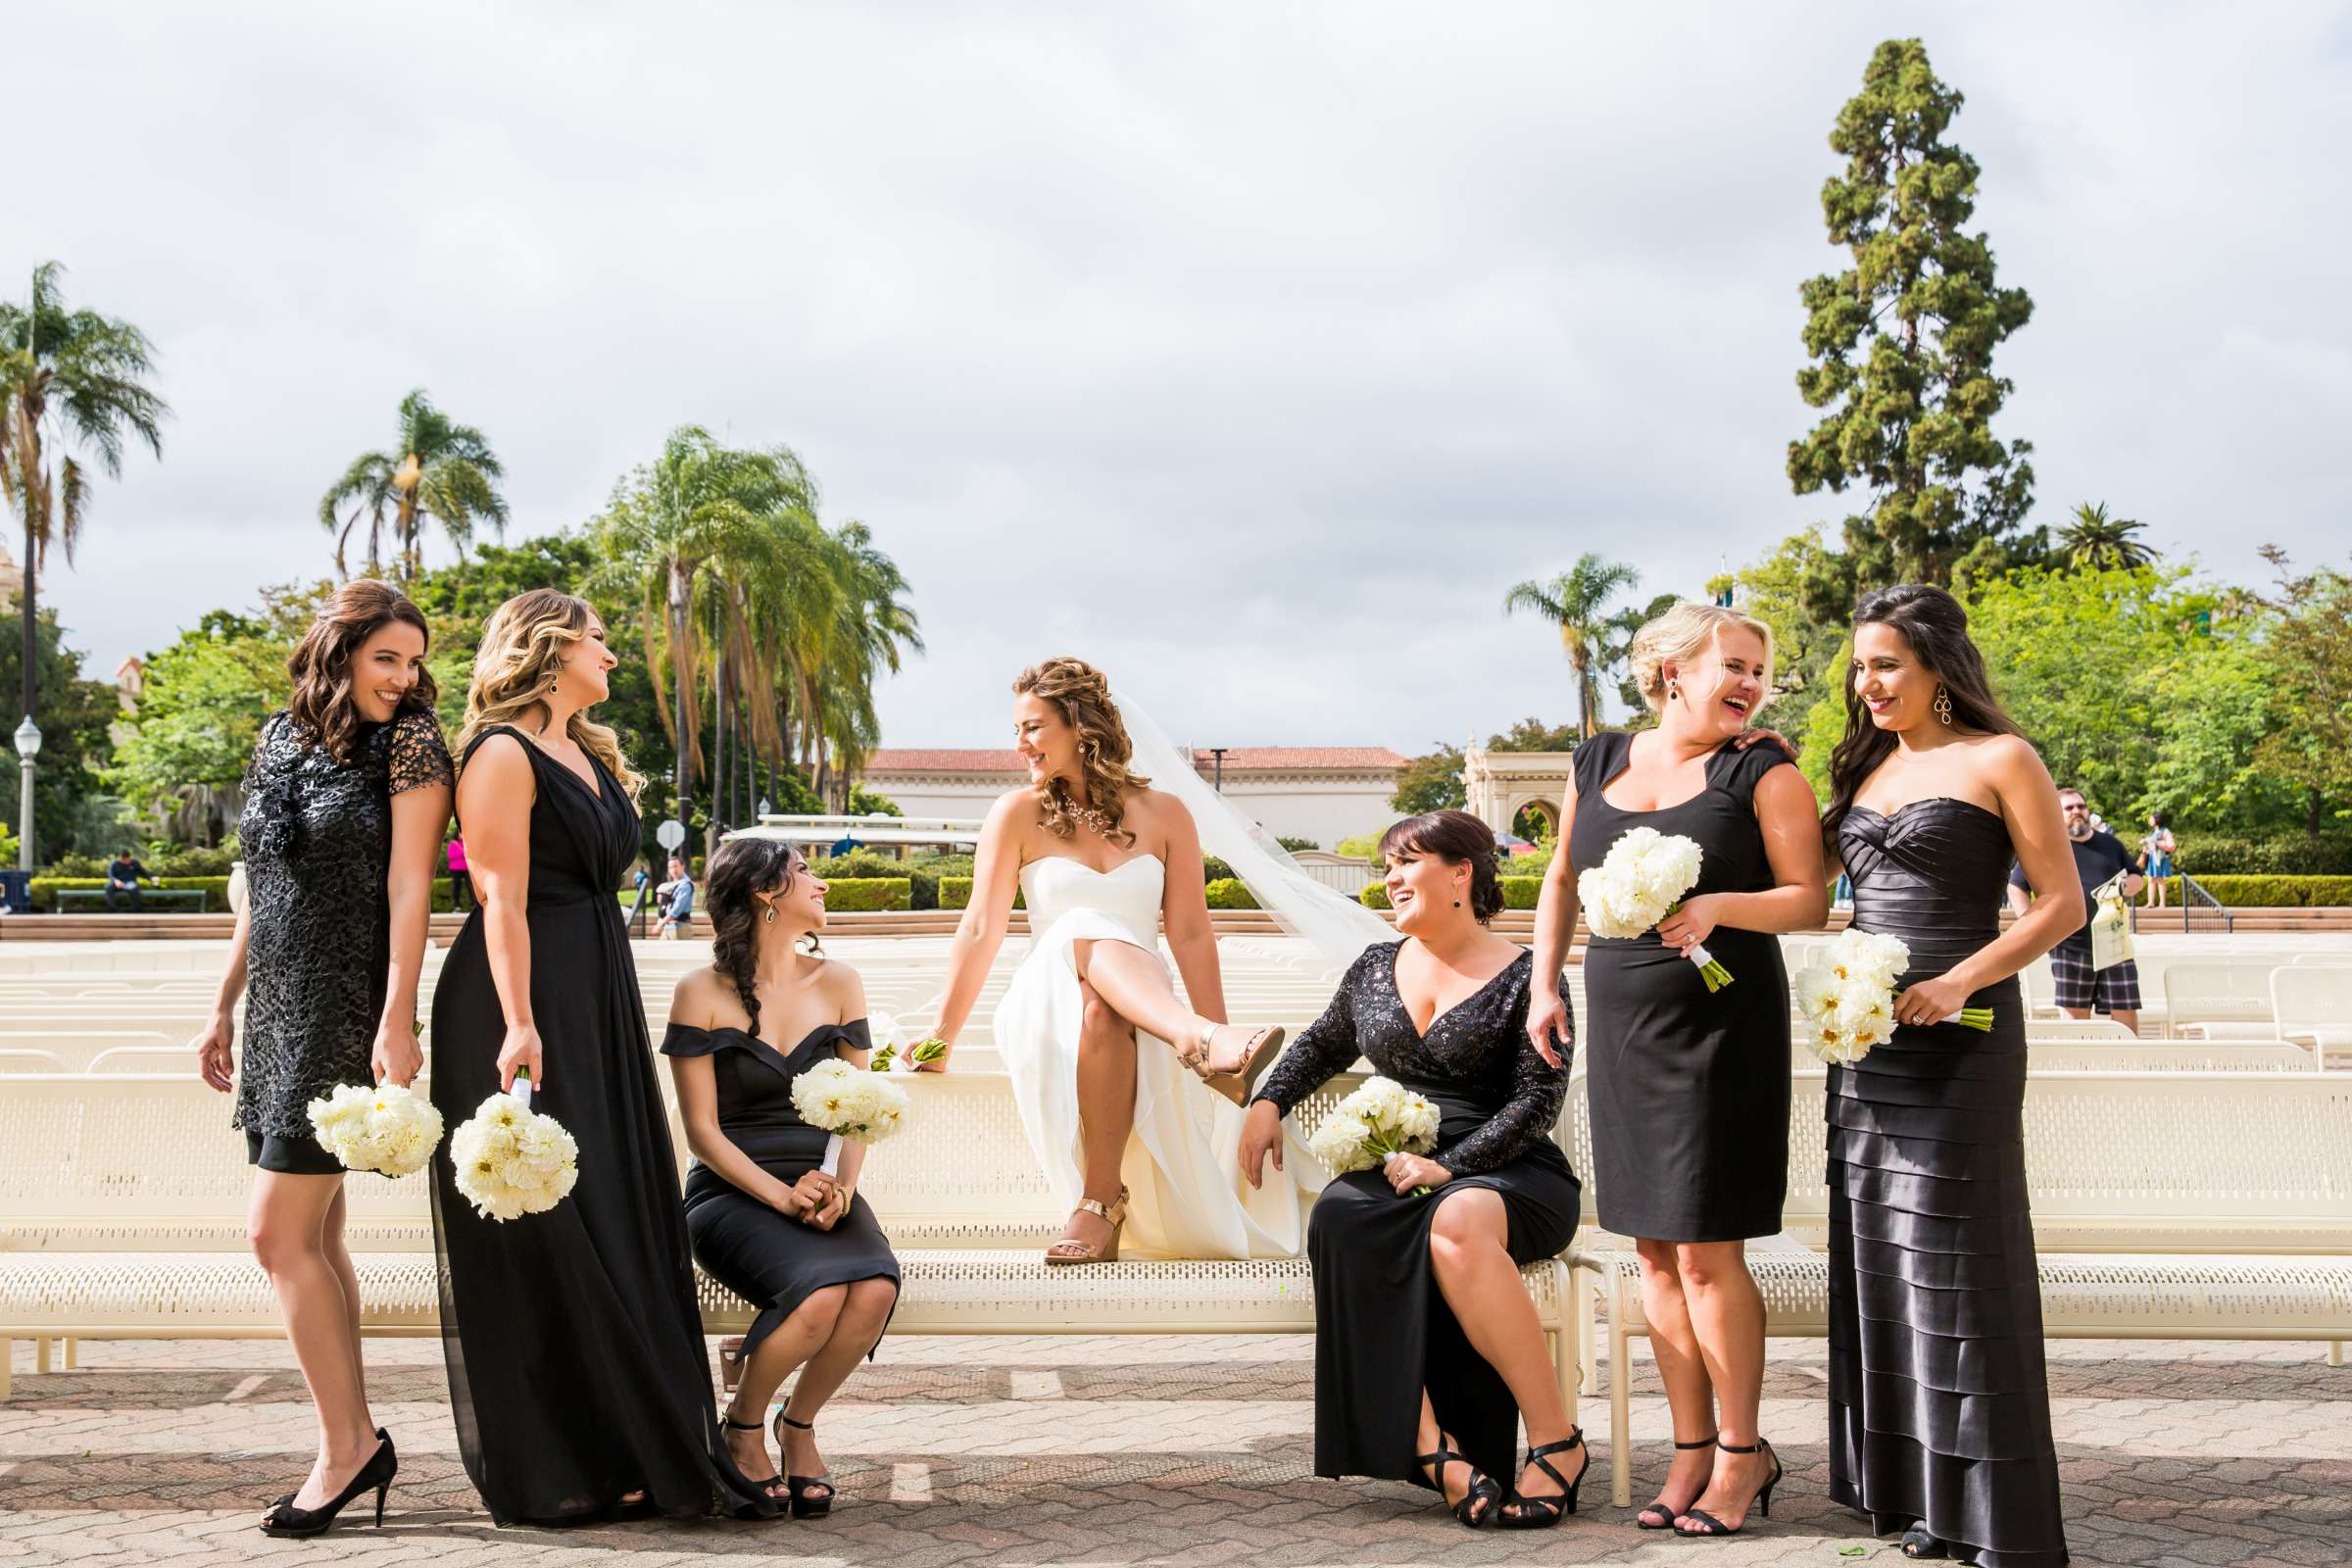 San Diego Museum of Art Wedding coordinated by First Comes Love Weddings & Events, Ruthie and Larry Wedding Photo #236826 by True Photography